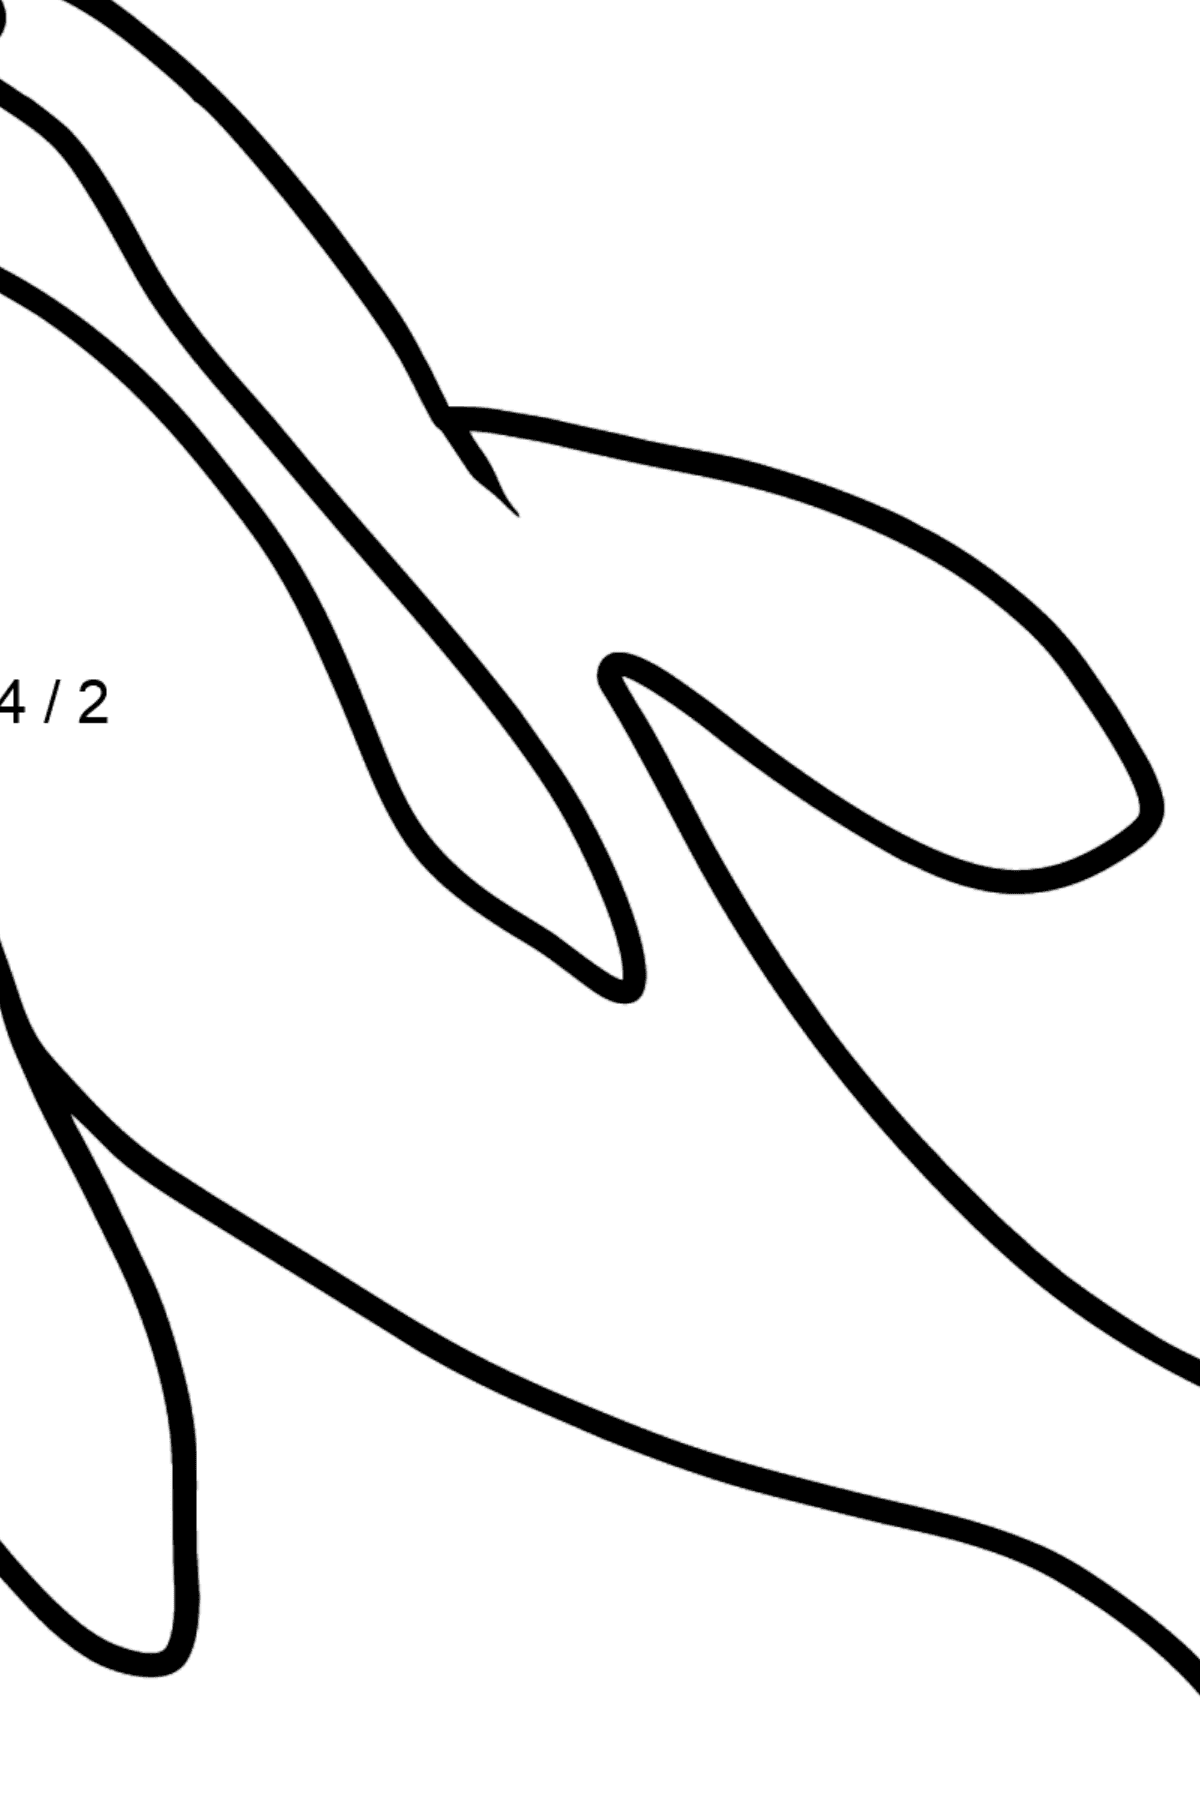 Dolphin coloring page - Math Coloring - Division for Kids